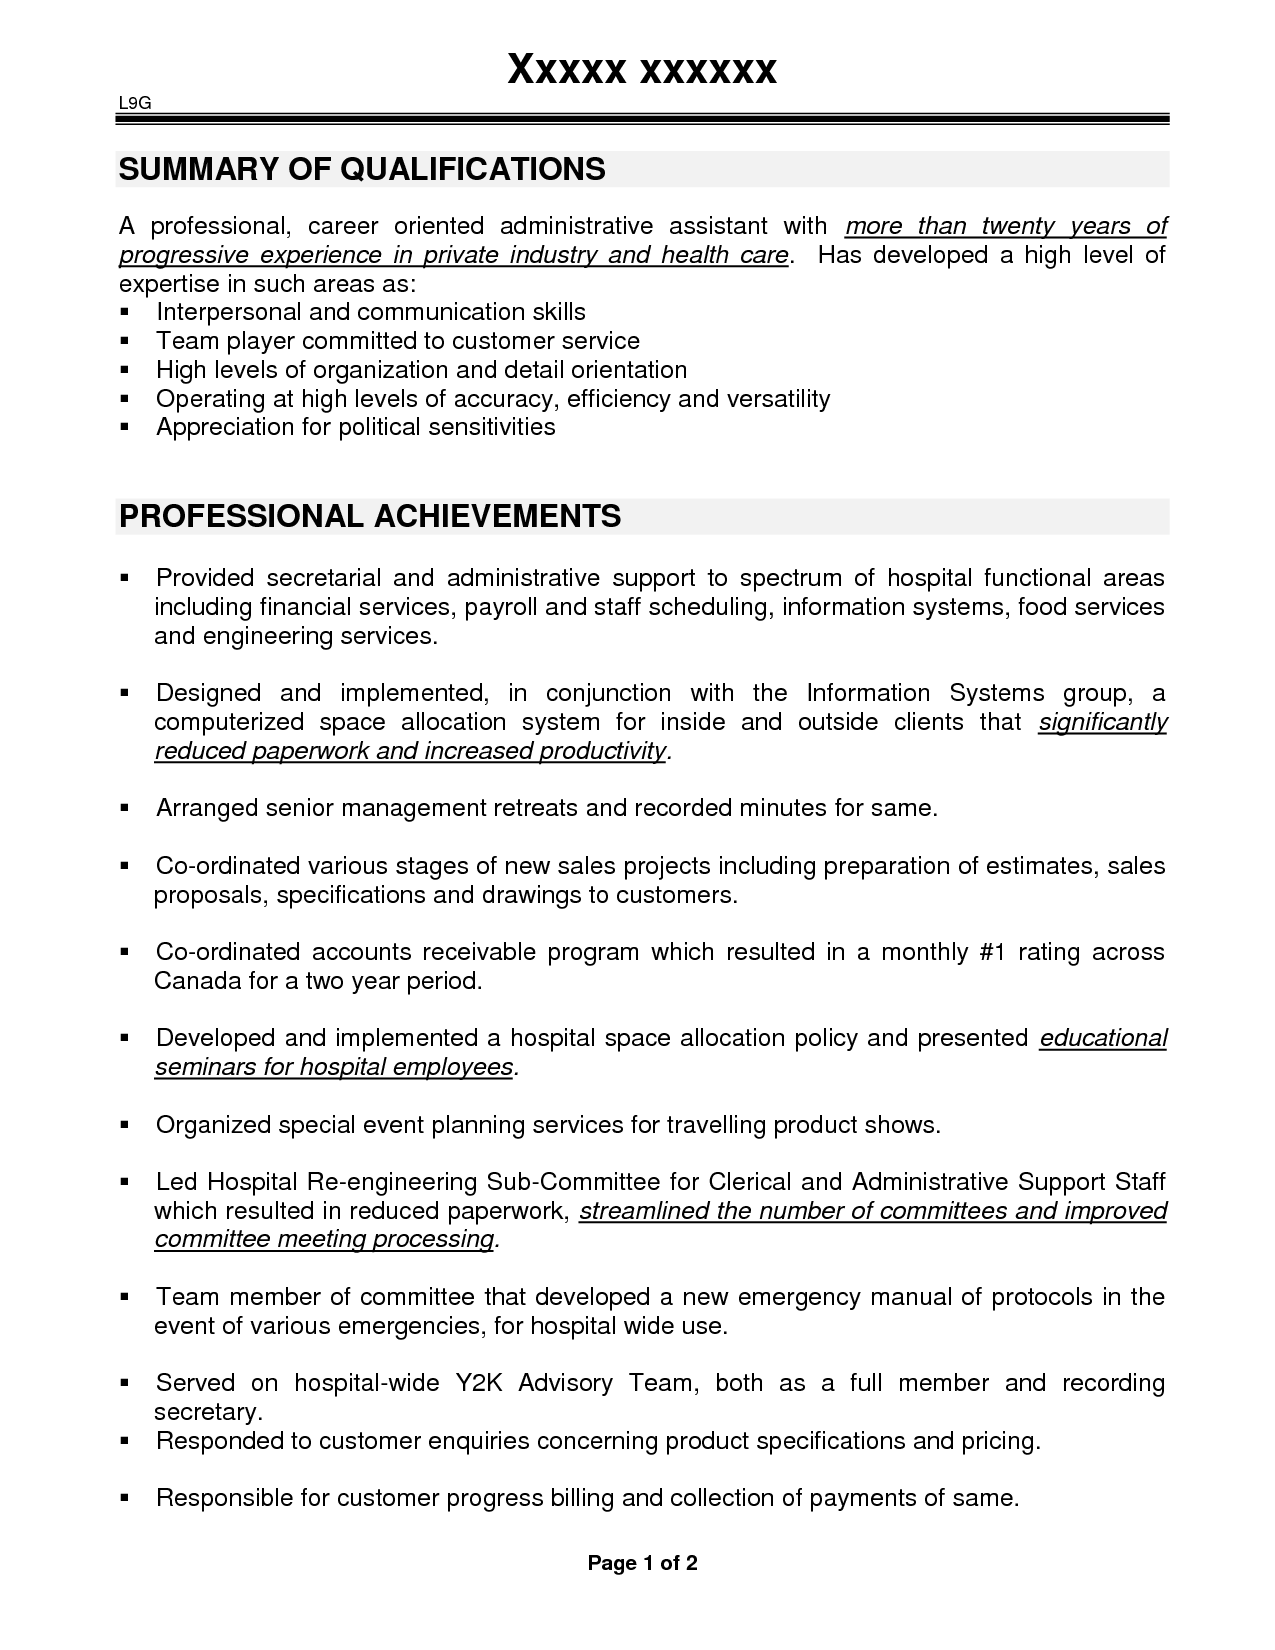 Medical Administrative Assistant Resume Samples medical administrative assistant job description